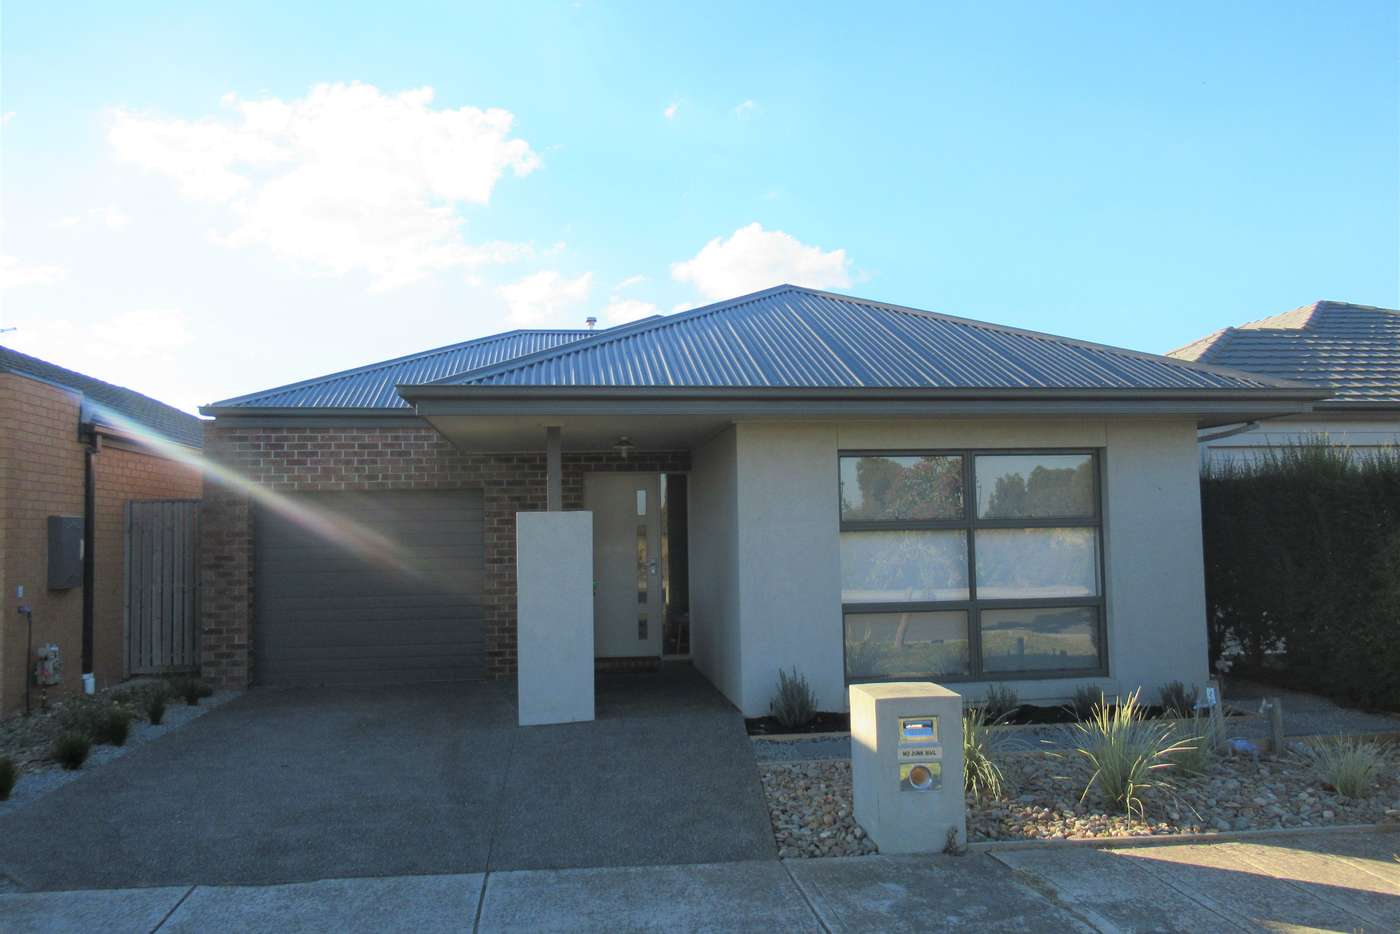 Main view of Homely house listing, 8 Sundial Parade, Epping VIC 3076